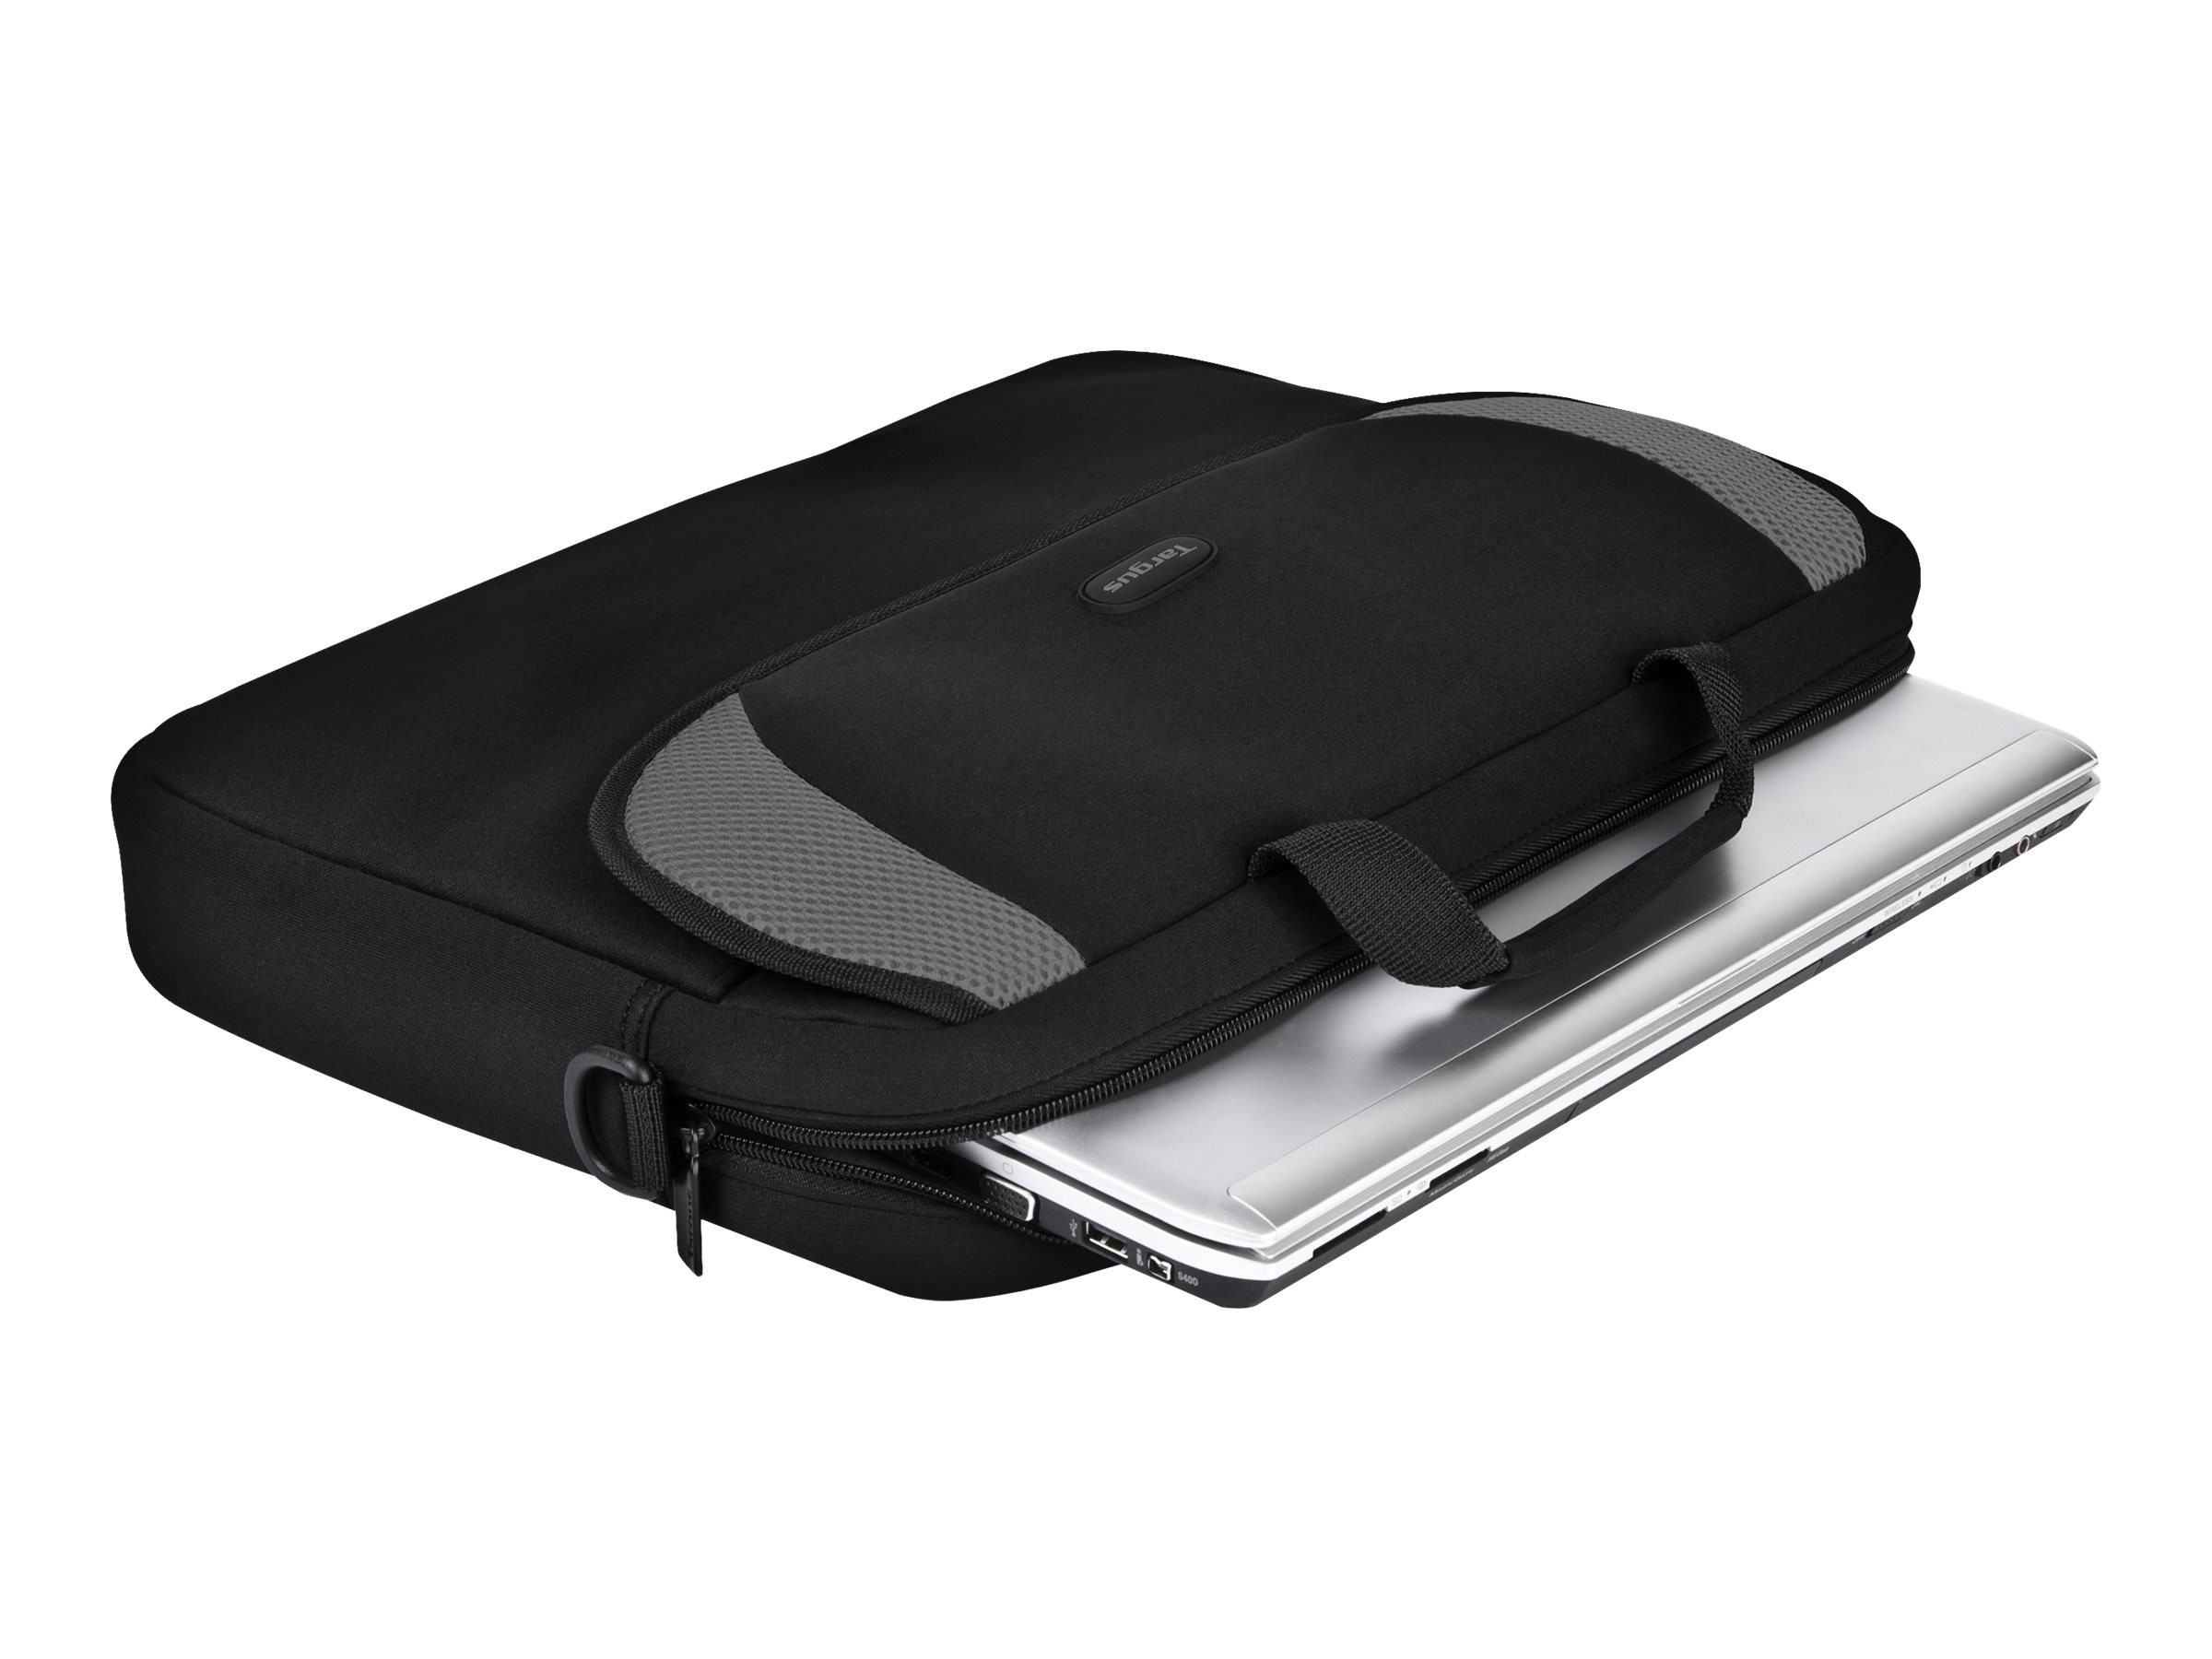 Targus 16 Notebook Sleeve, Black Gray, CVR200, 4838741, Carrying Cases - Notebook